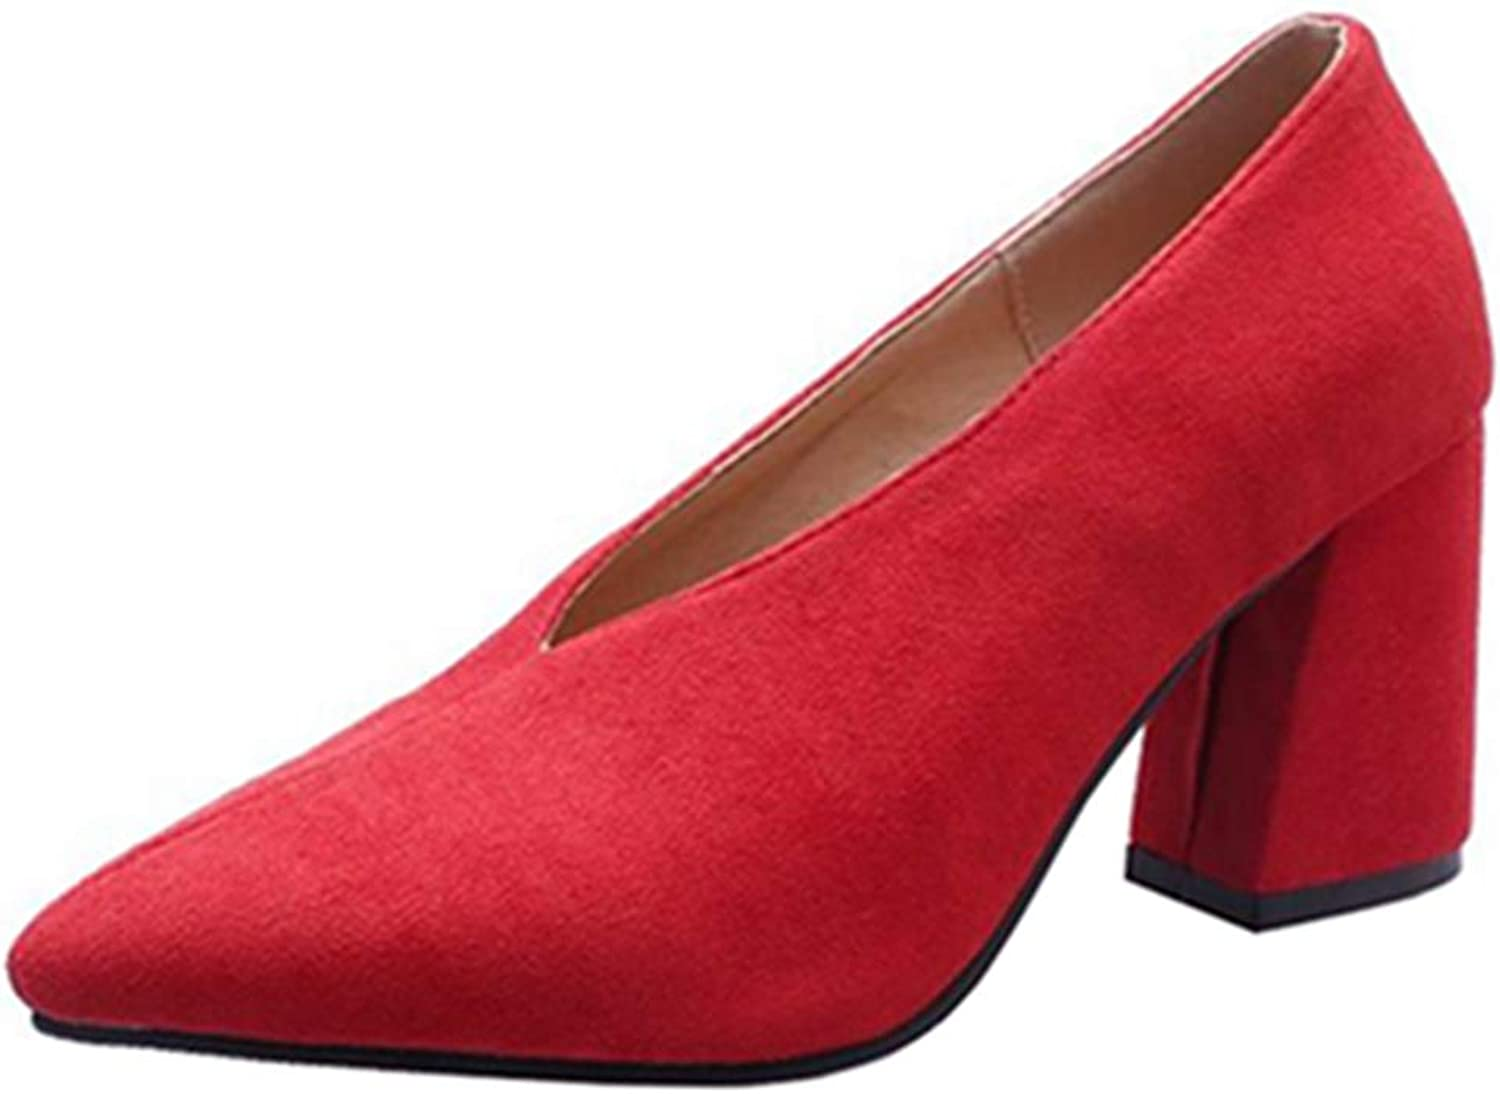 Cocey Women Casual Pumps with Chunky Heel